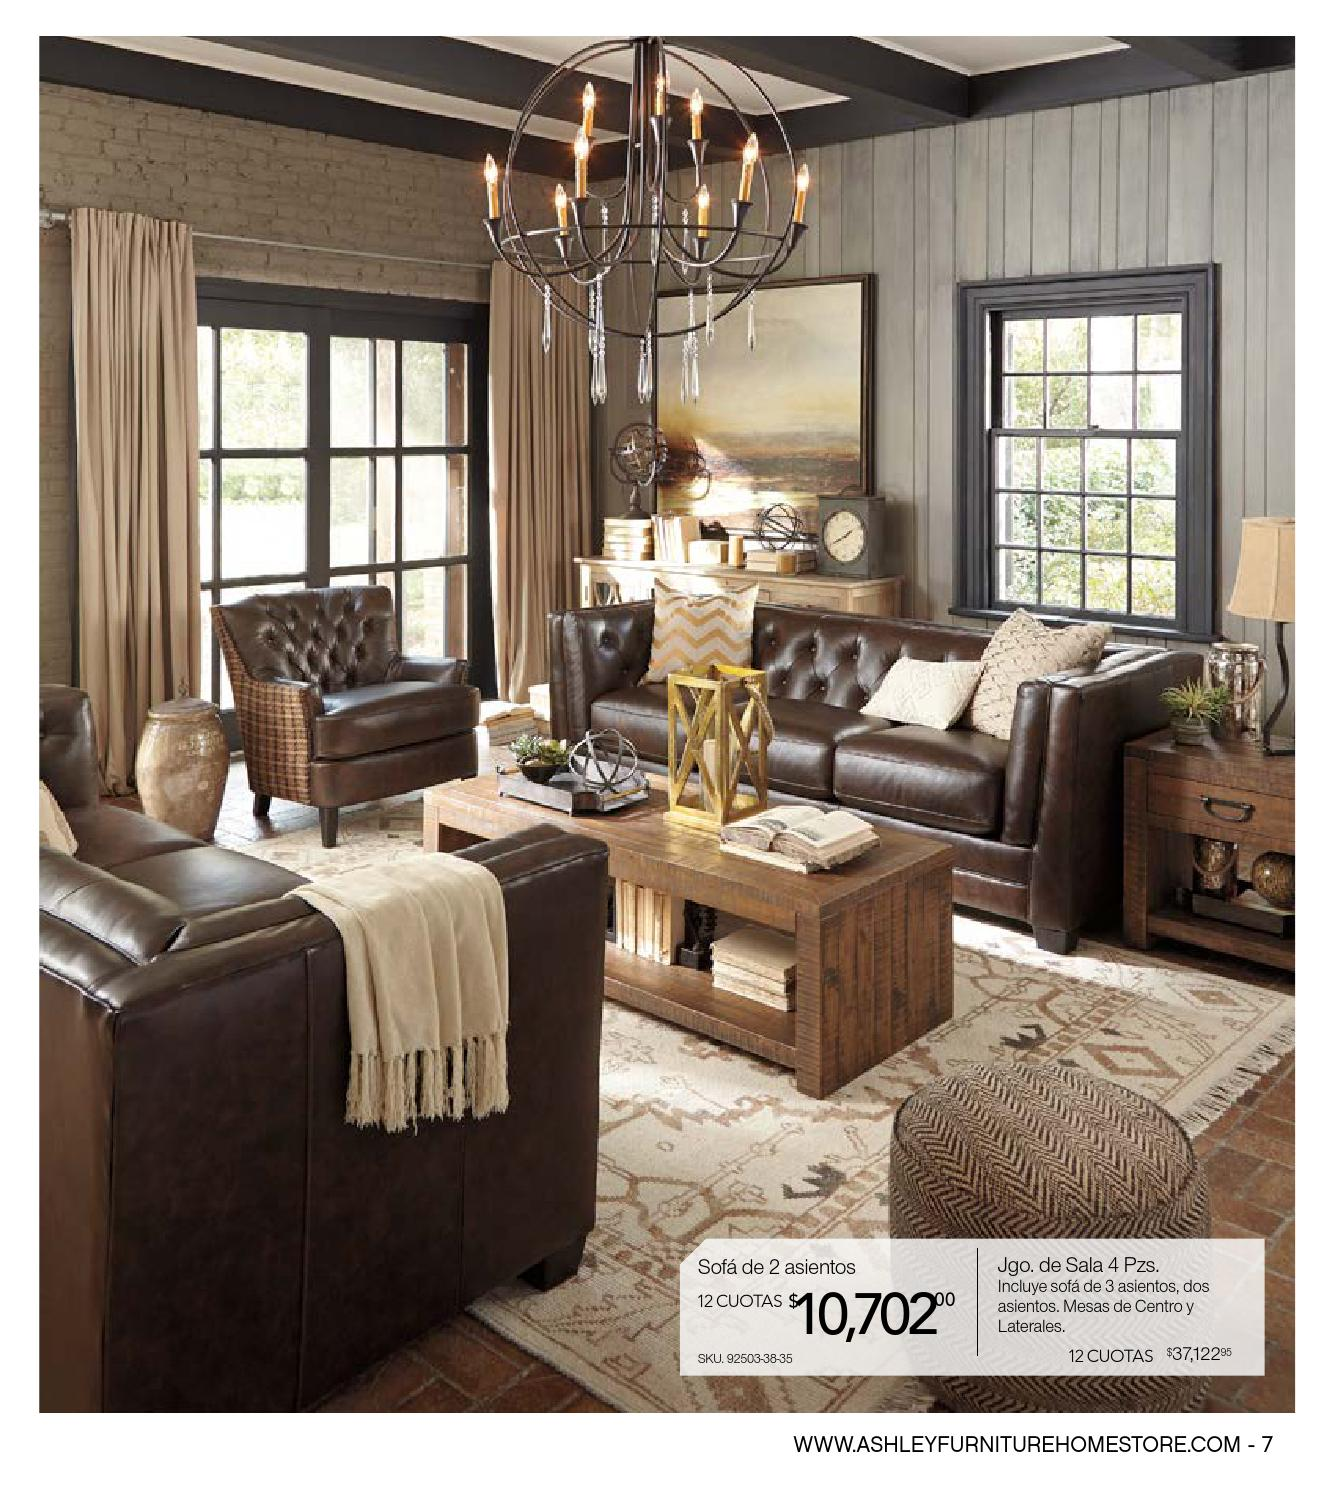 Urbanology By Ashley By Ashley Furniture HomeStore RD